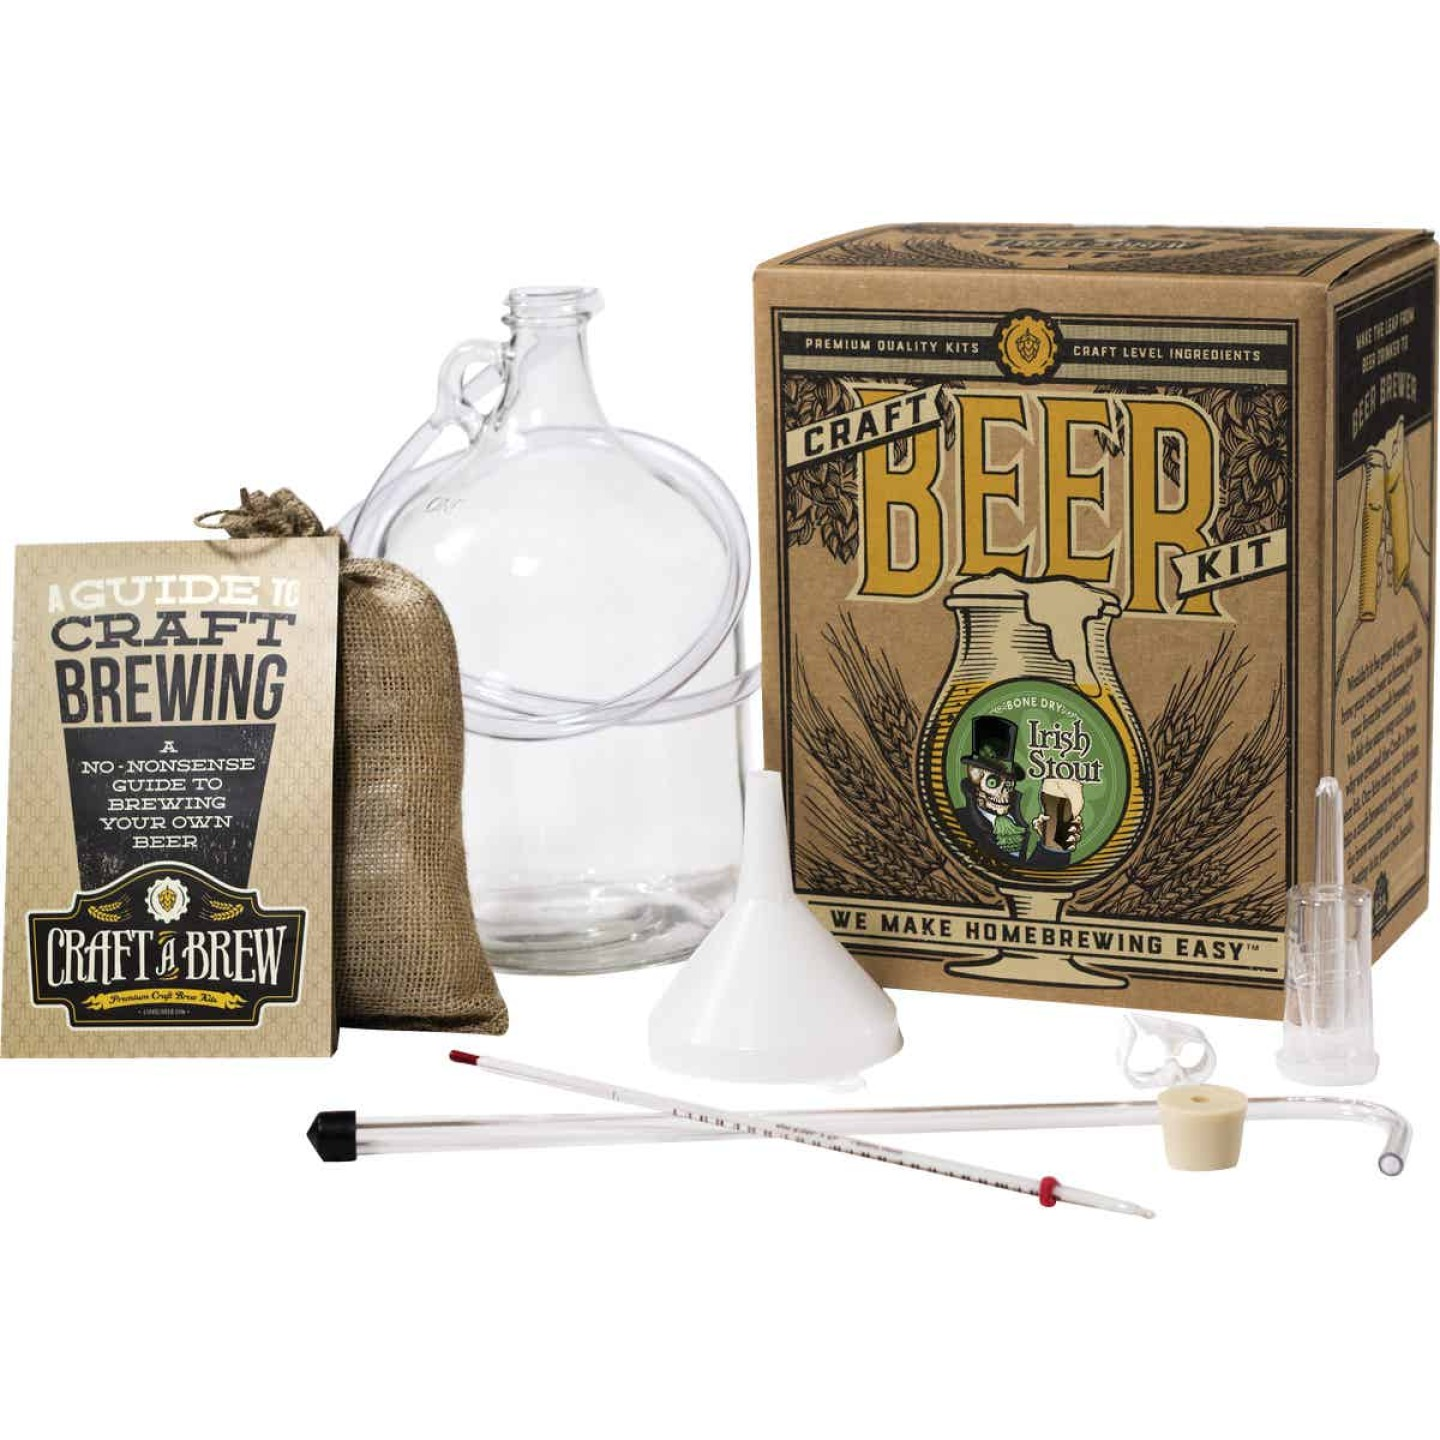 Craft A Brew Bone Dry Irish Stout Beer Brewing Kit (11-Piece) Image 1